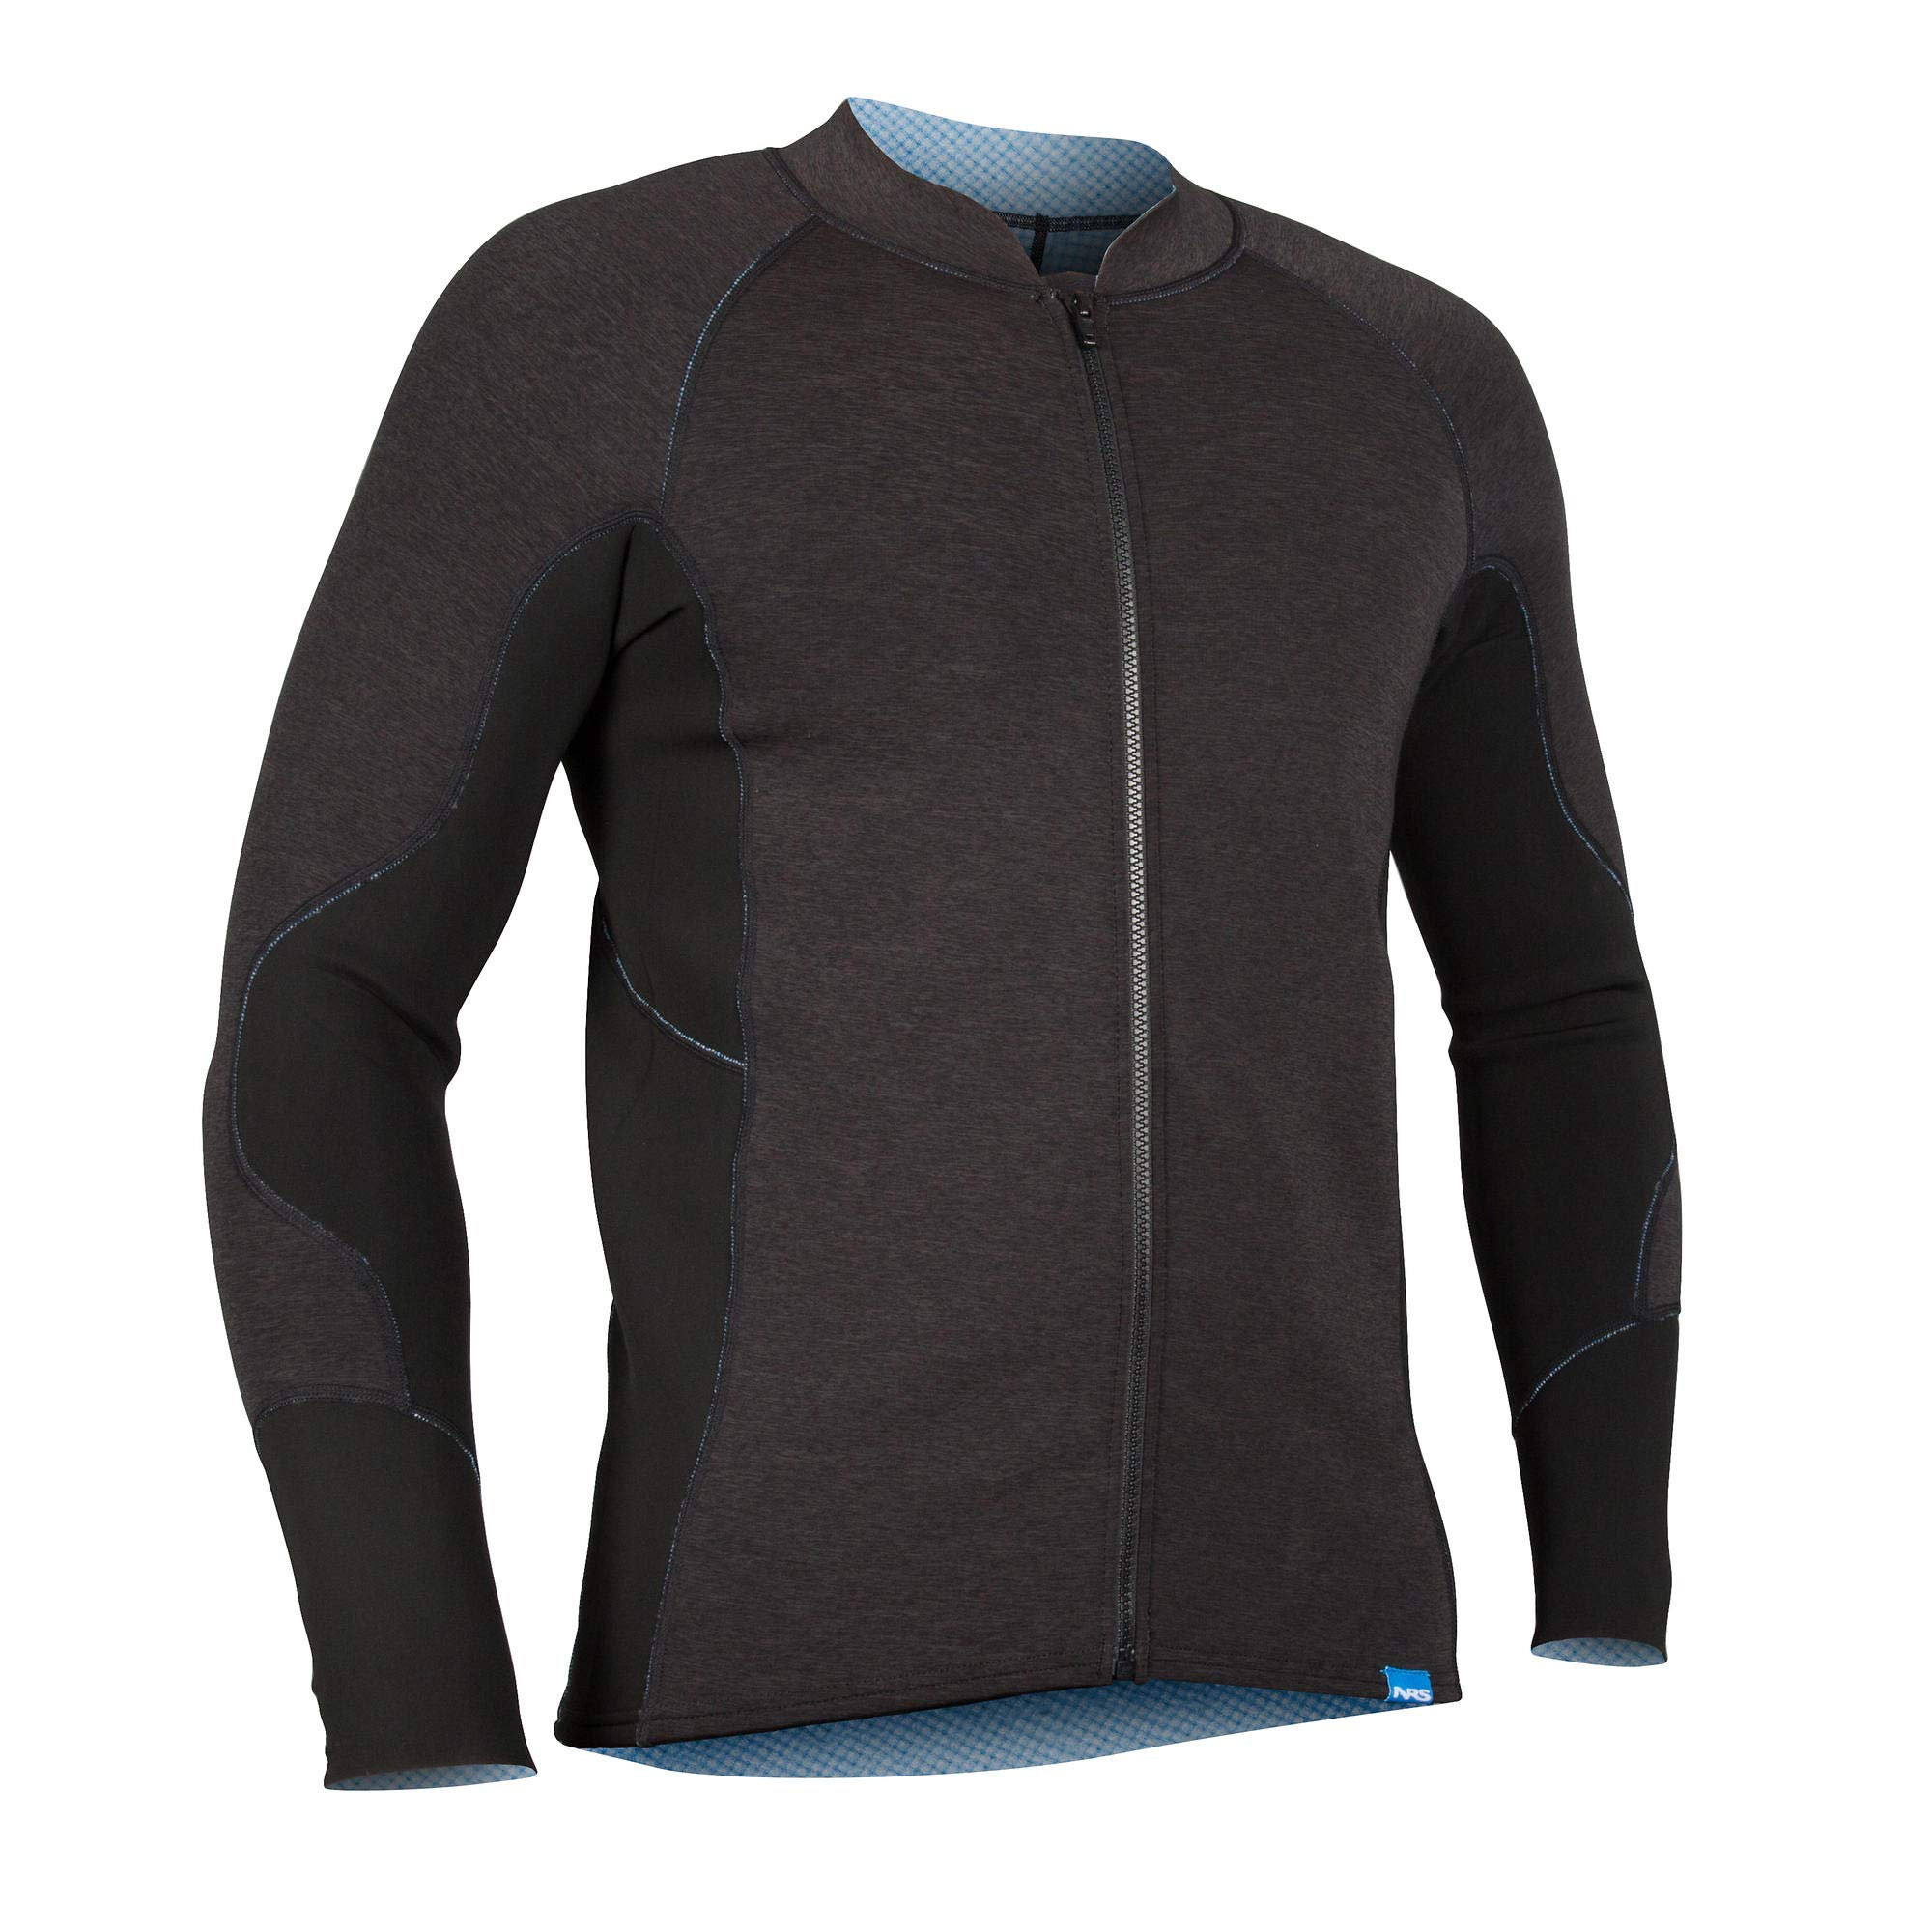 NRS HydroSkin 1.5 Jacket - Men's Charcoal Heather Small